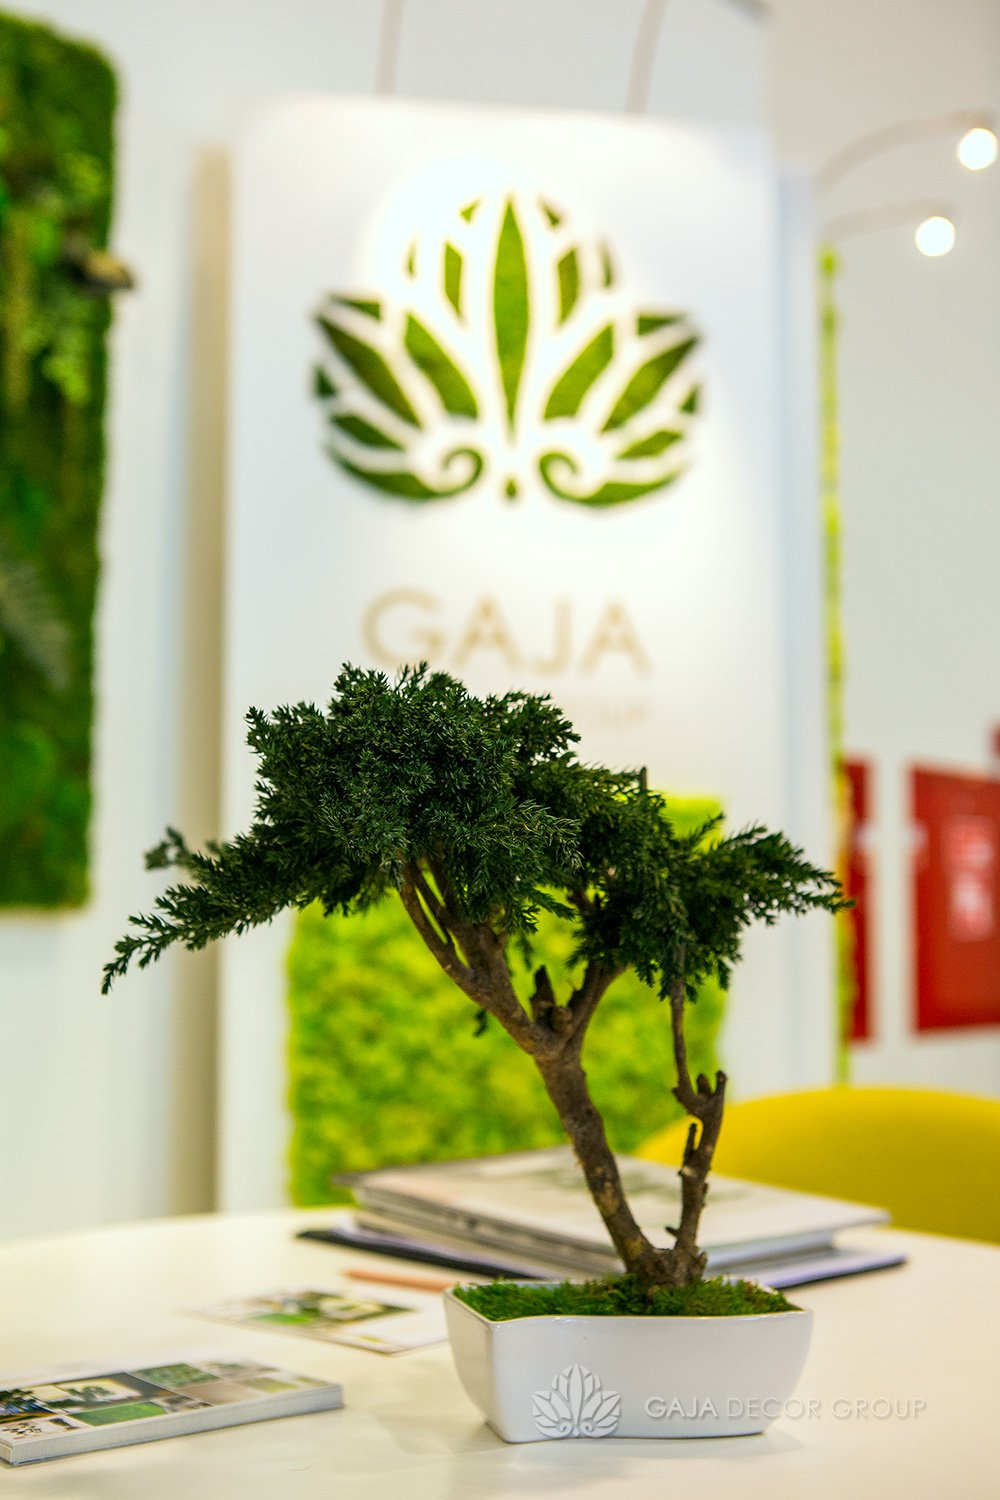 Mini Bonsai Tree Gaja Decor Group